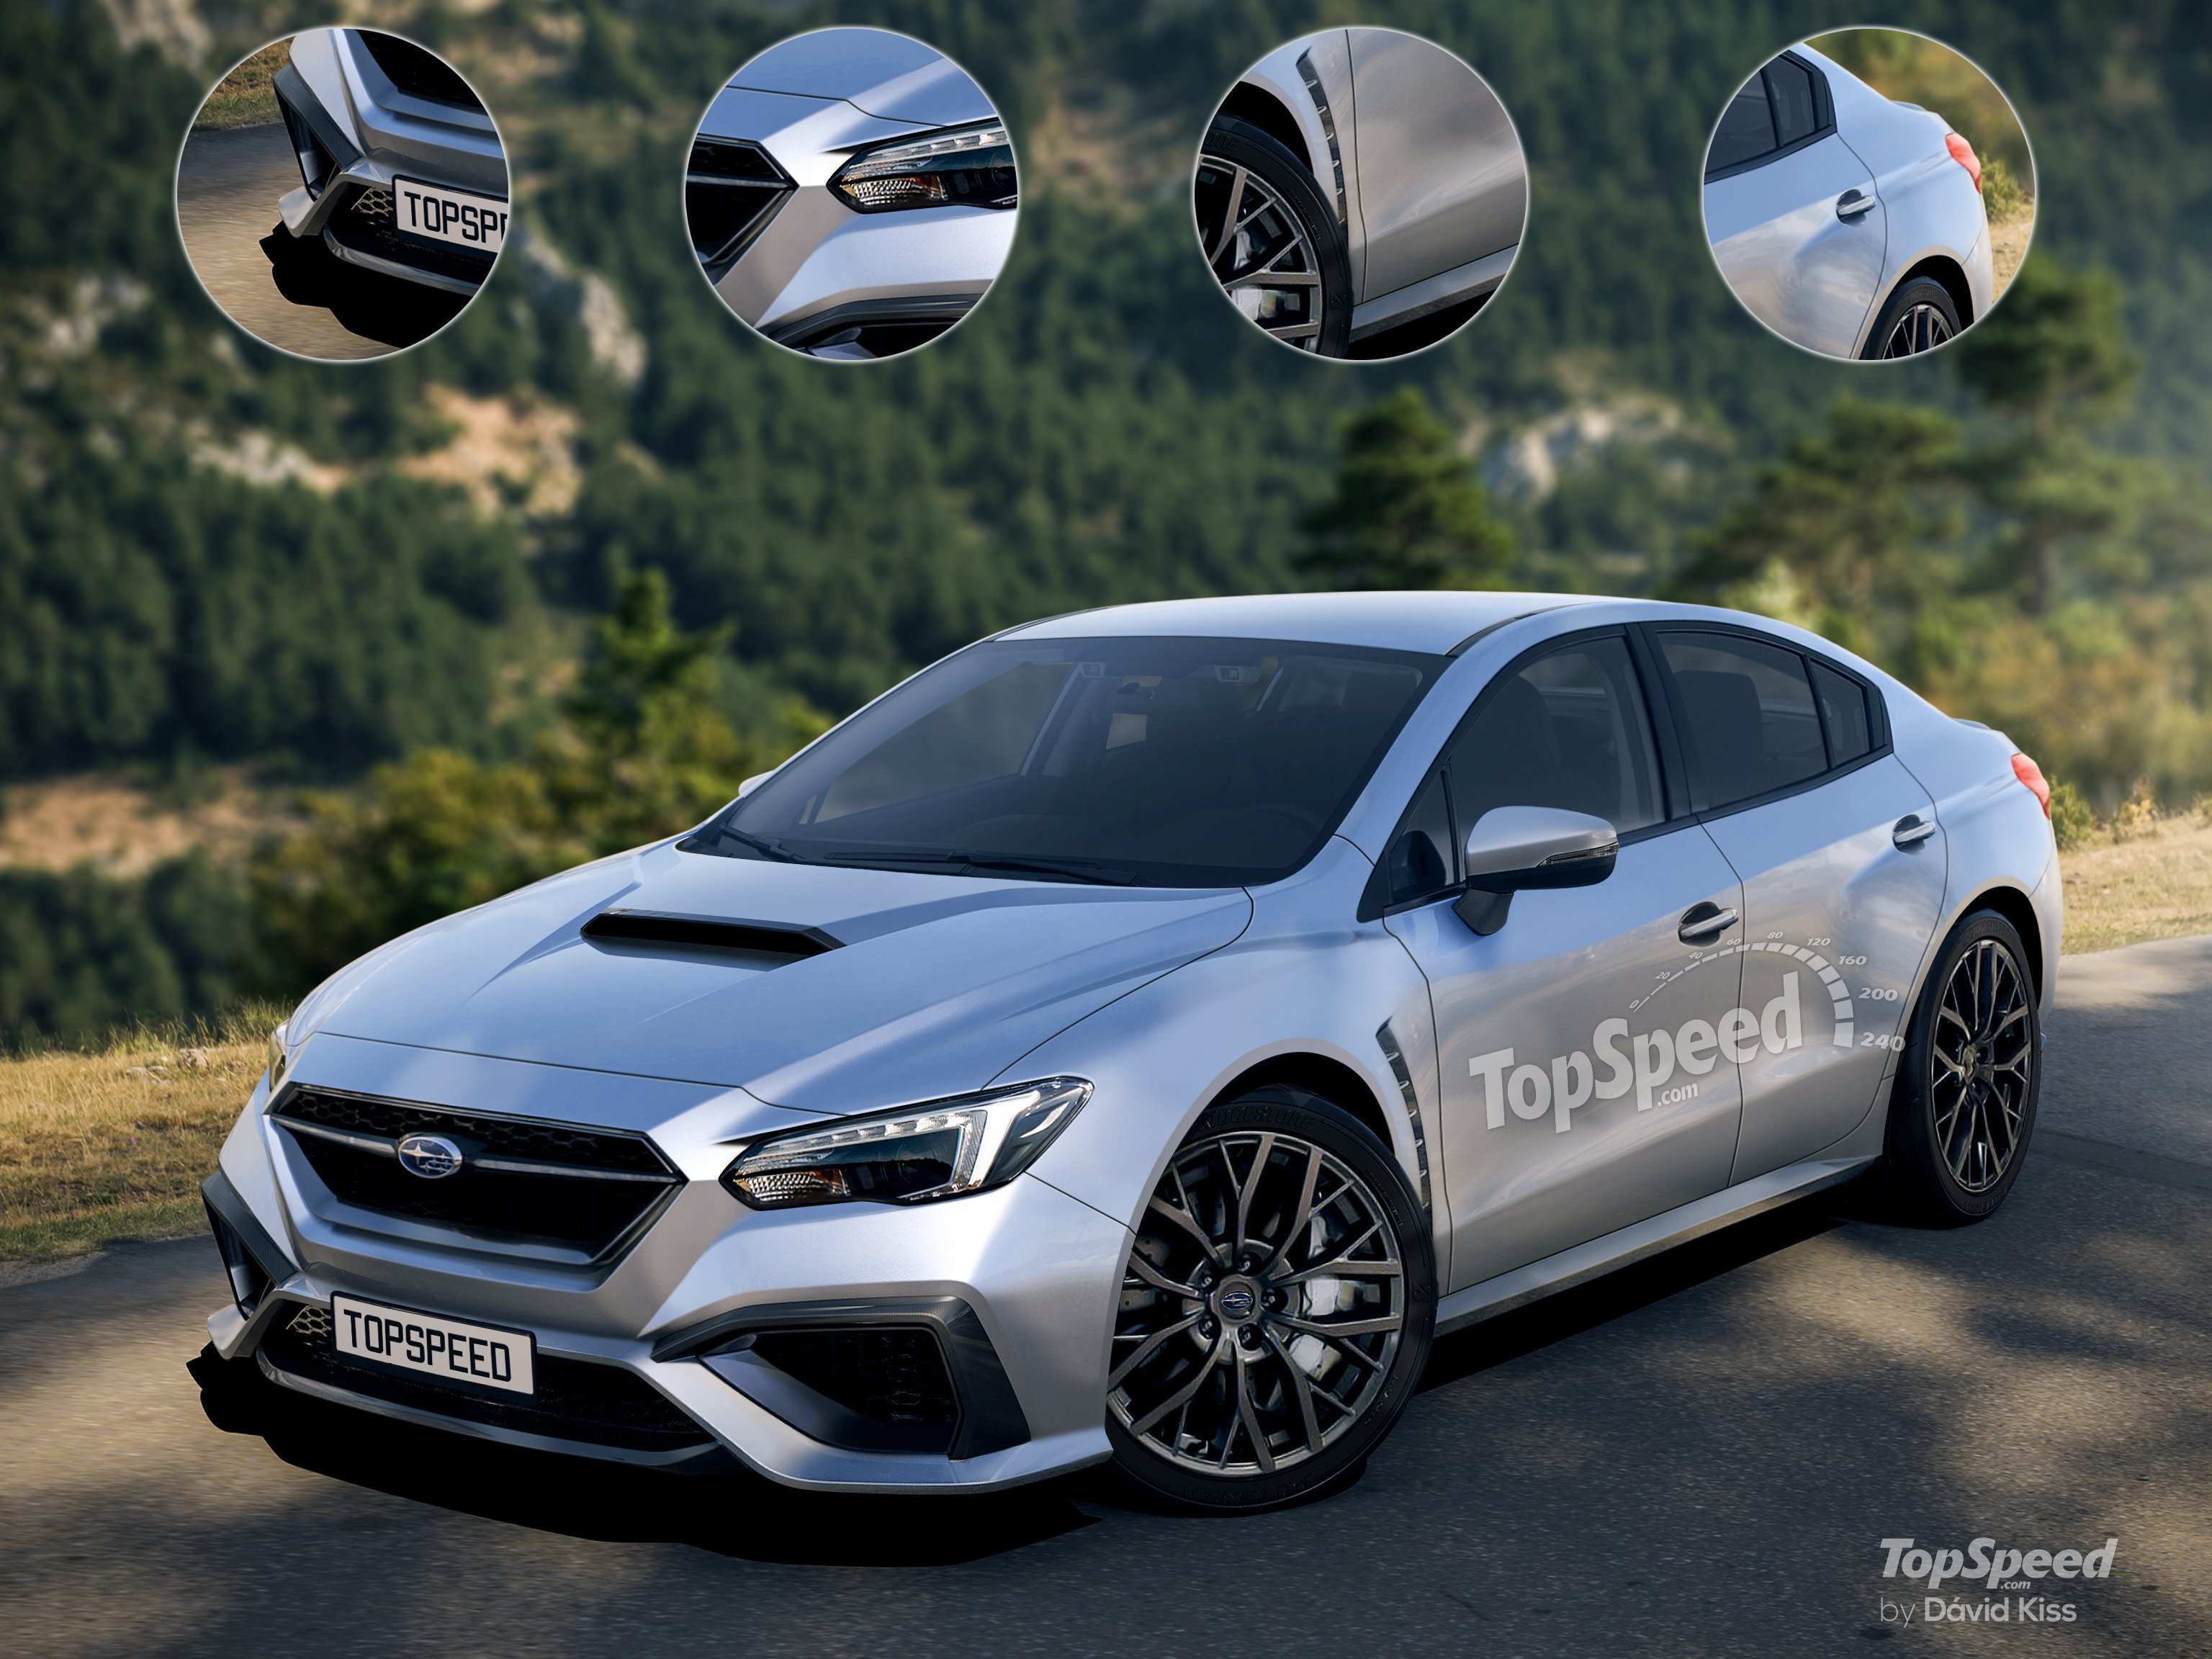 21 All New 2020 Subaru Impreza Price And Review